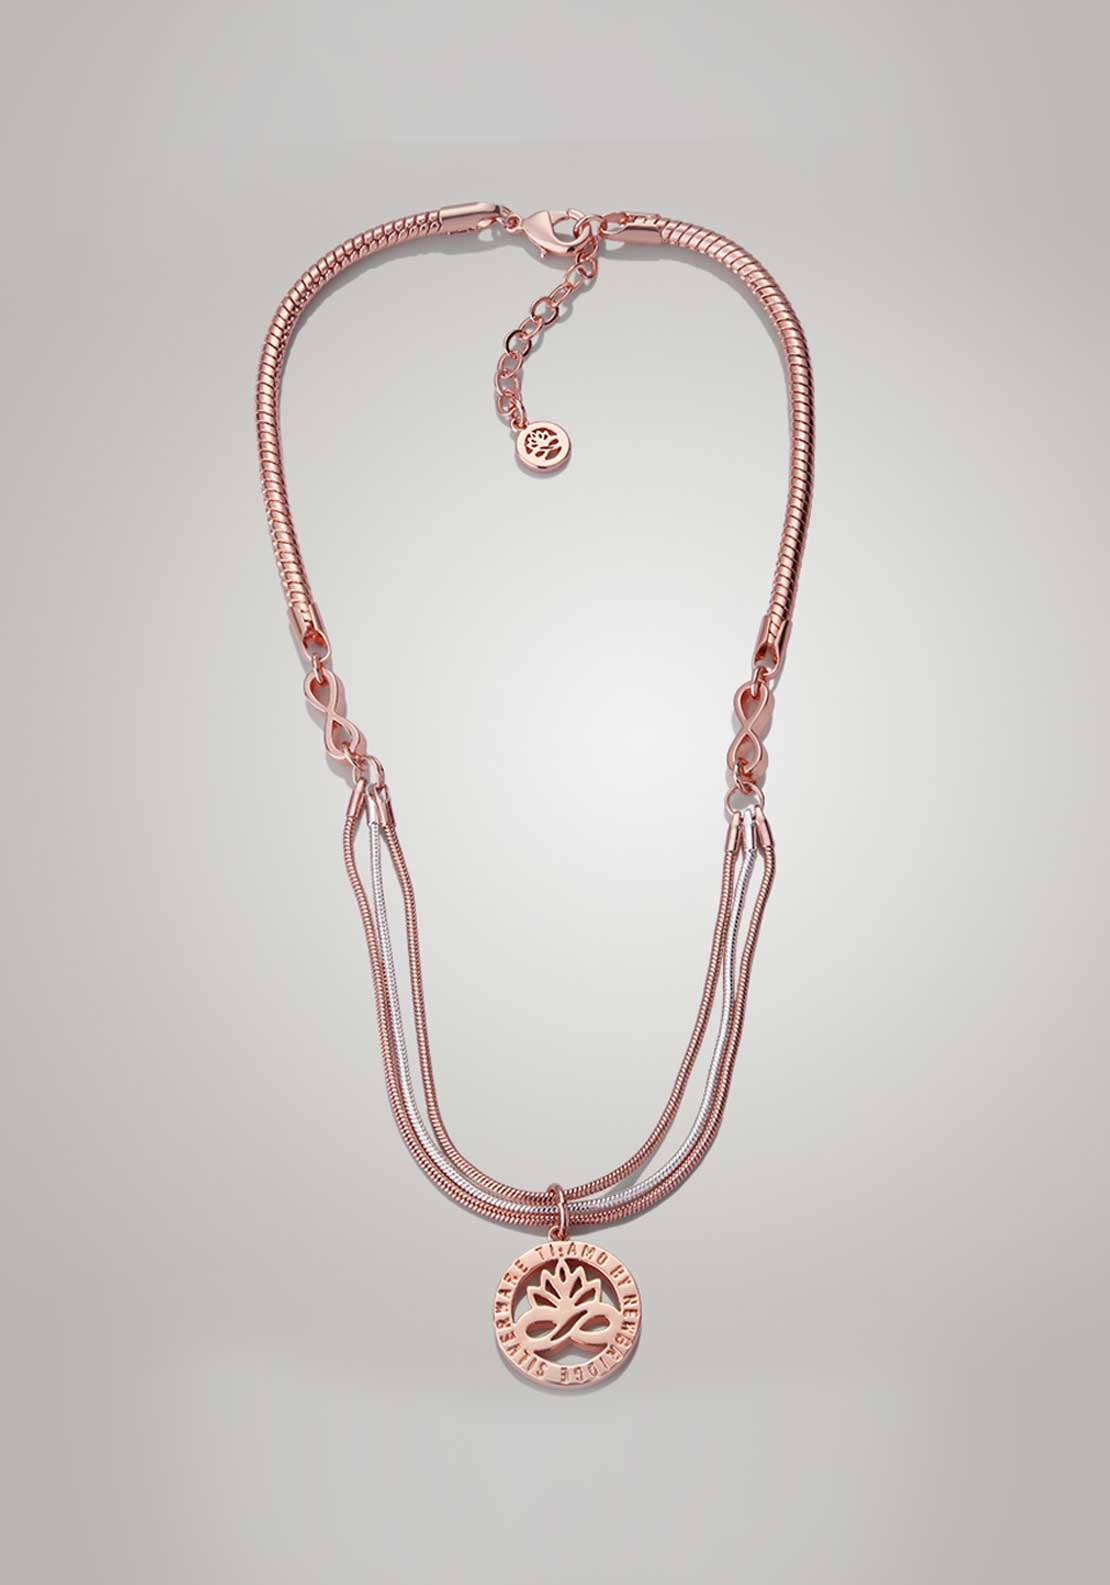 Newbridge Silverware Ti Amo Collection Rose Gold & Silver Plated Pendant